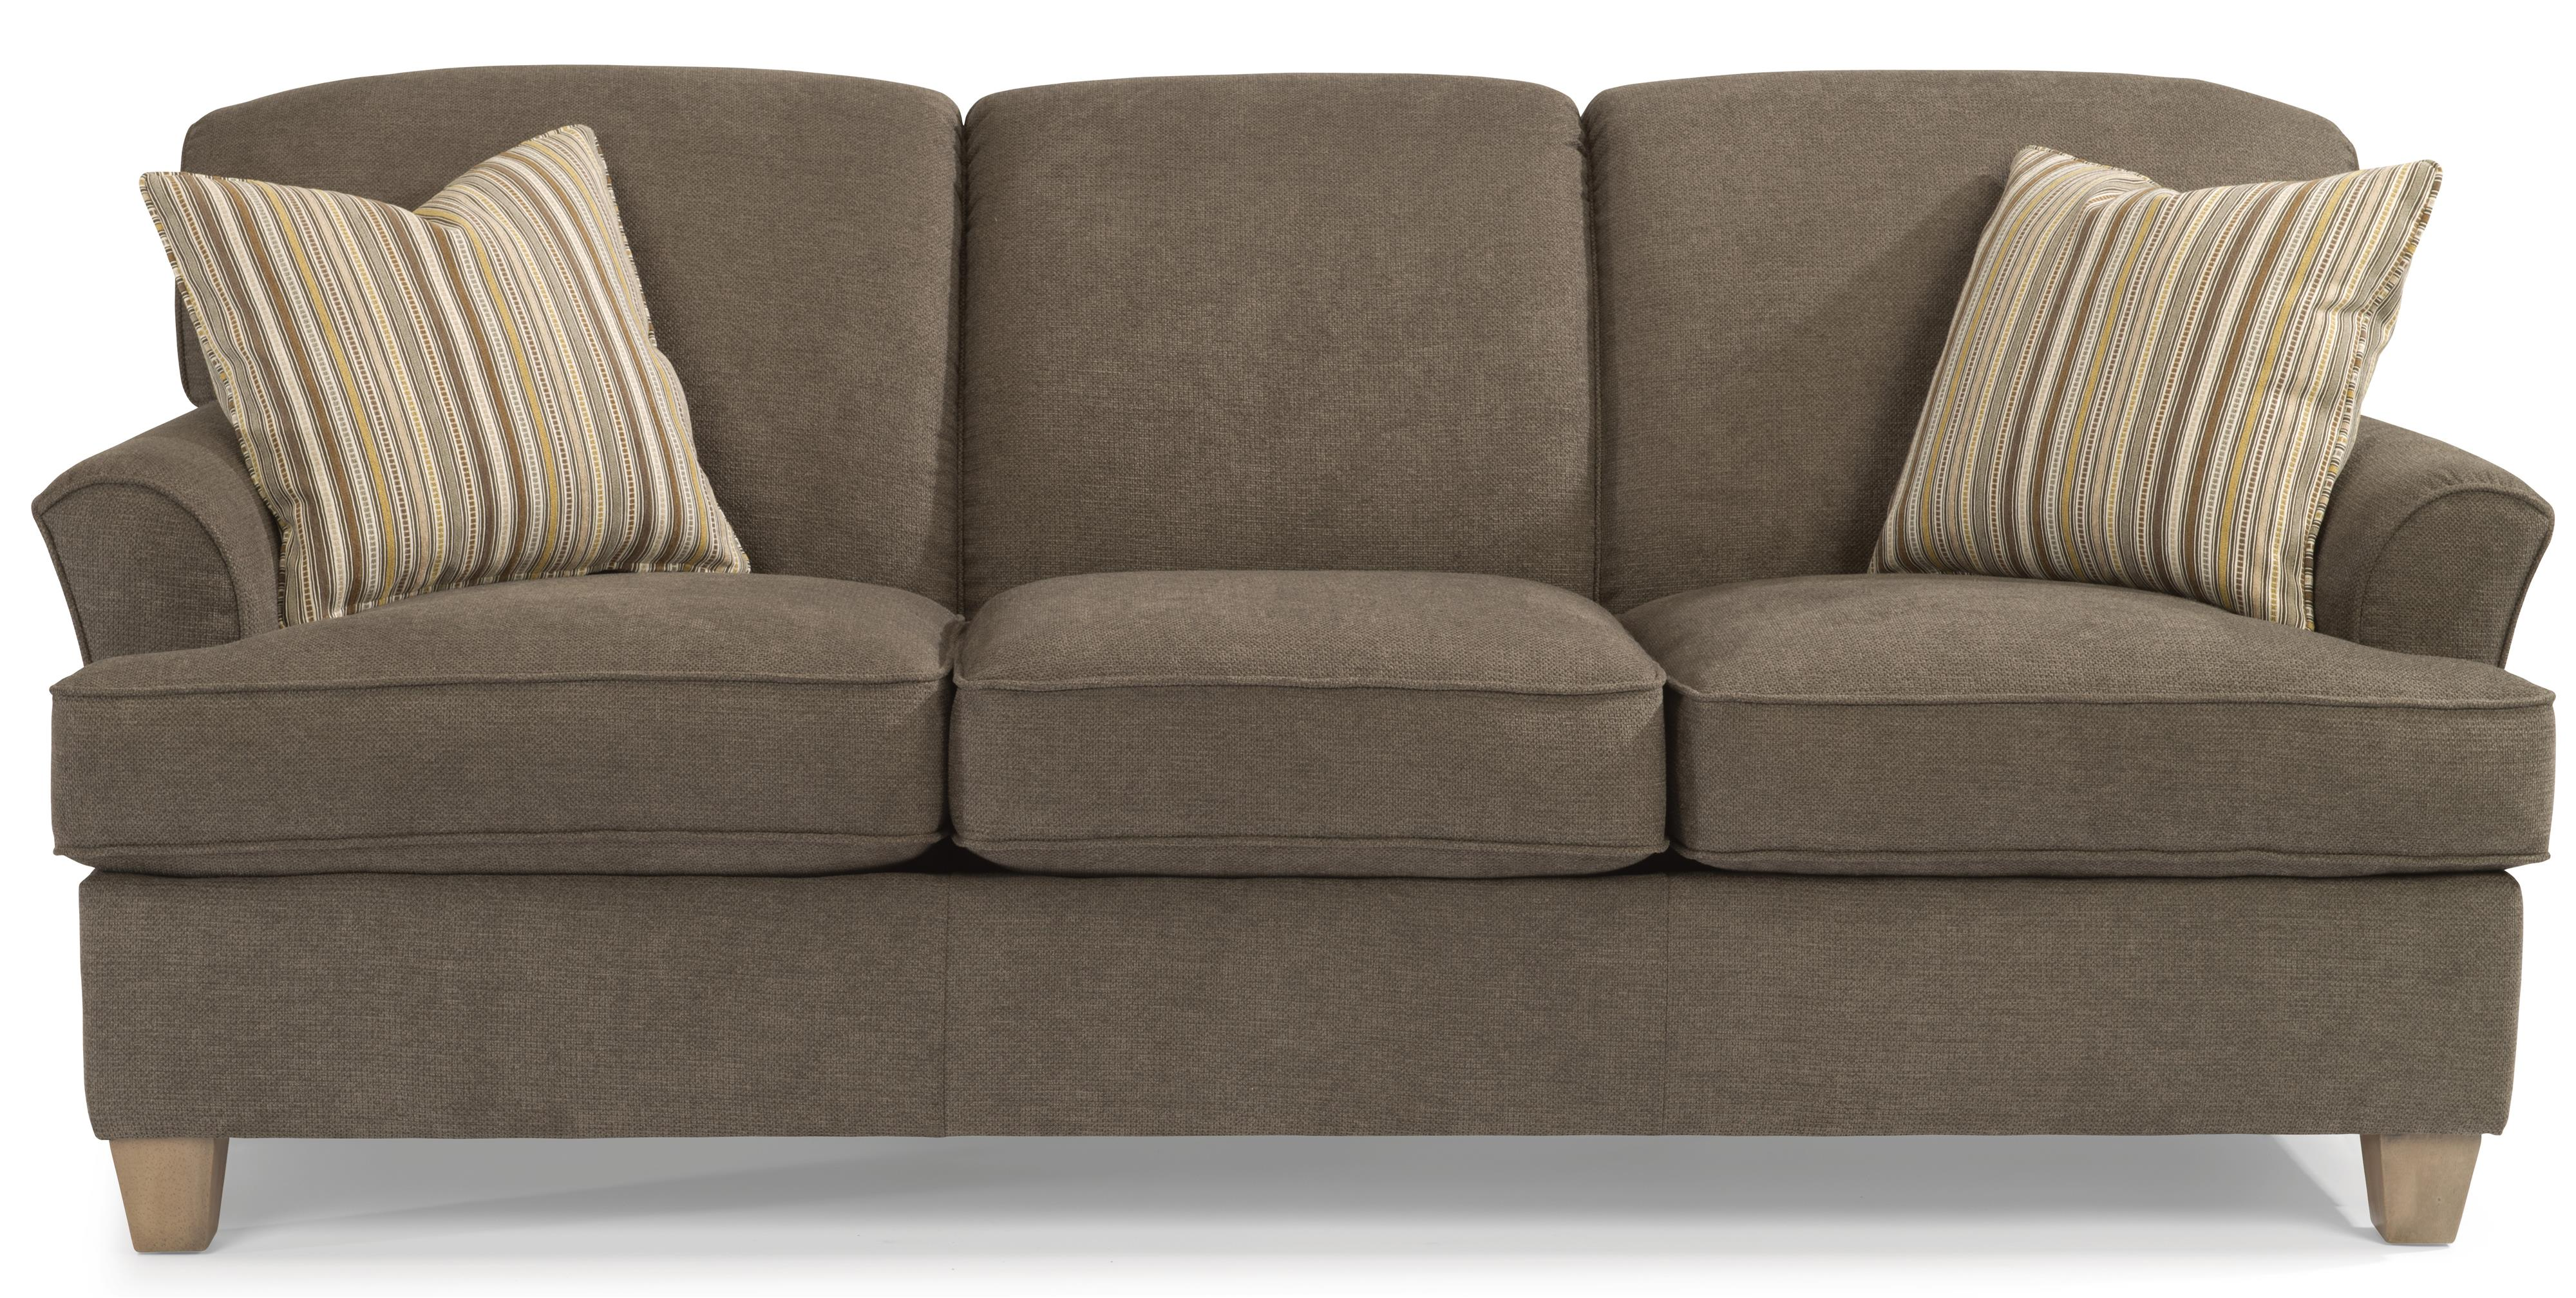 Atlantis Sofa by Flexsteel at Furniture and ApplianceMart